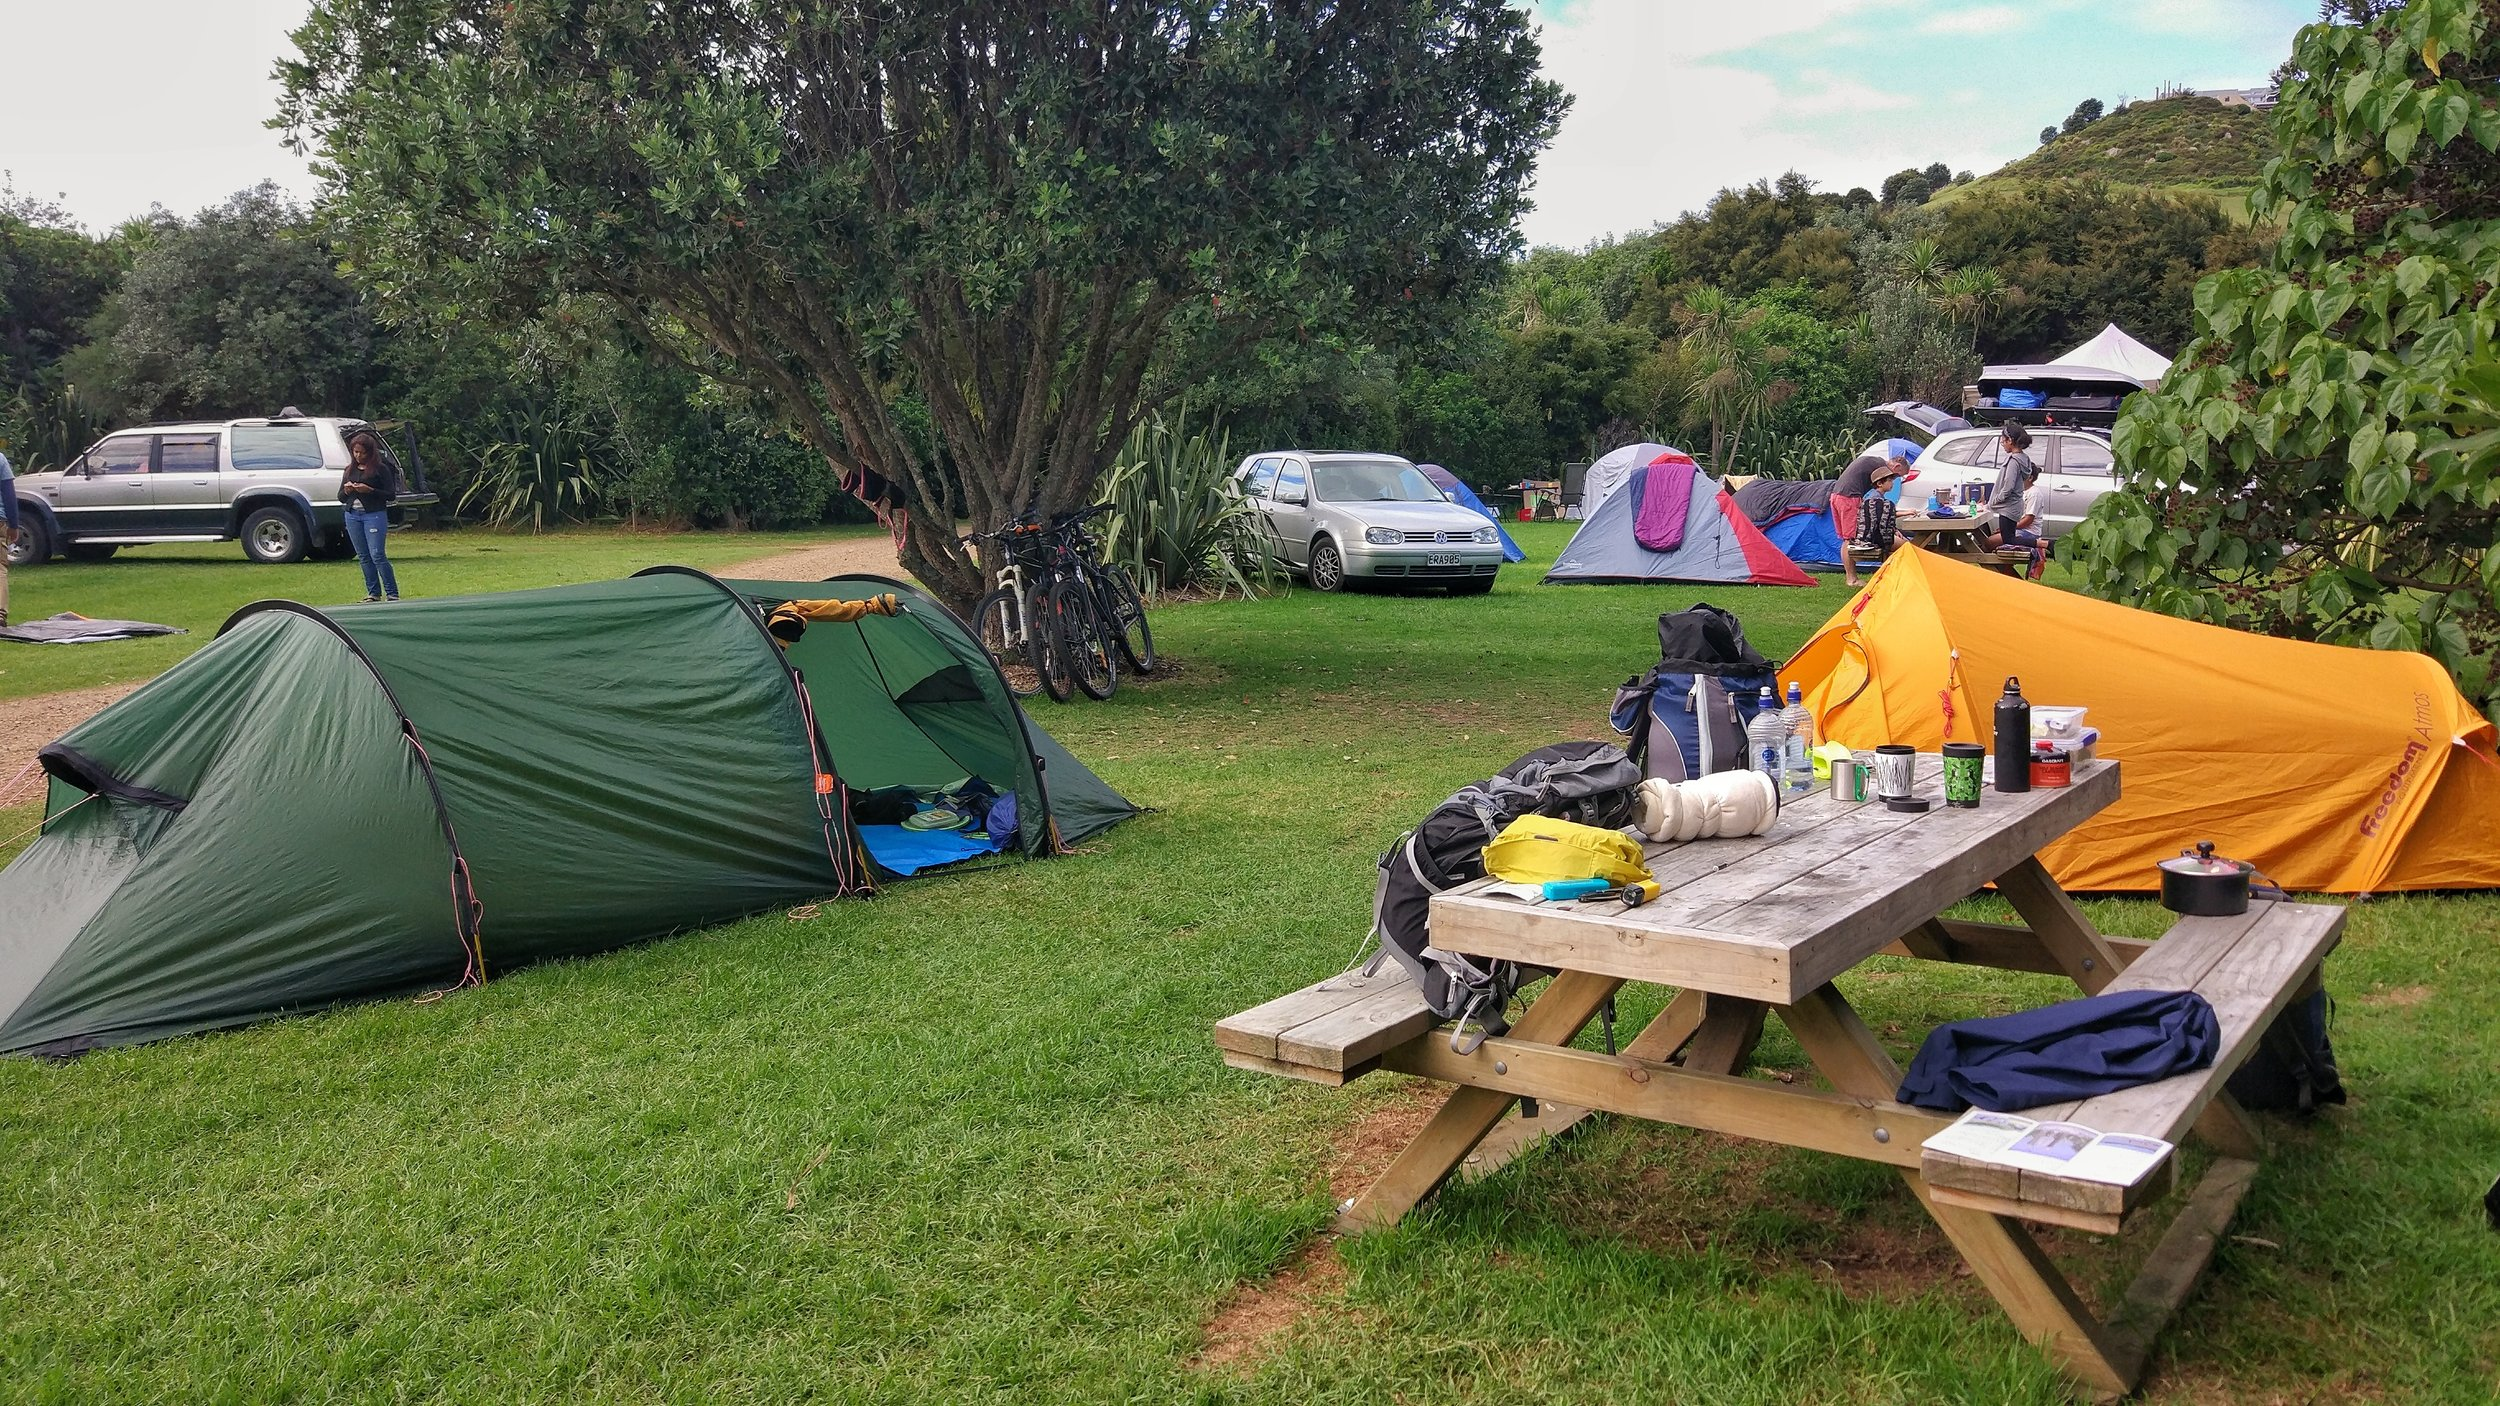 Camping on Waiheke island: better bring your car